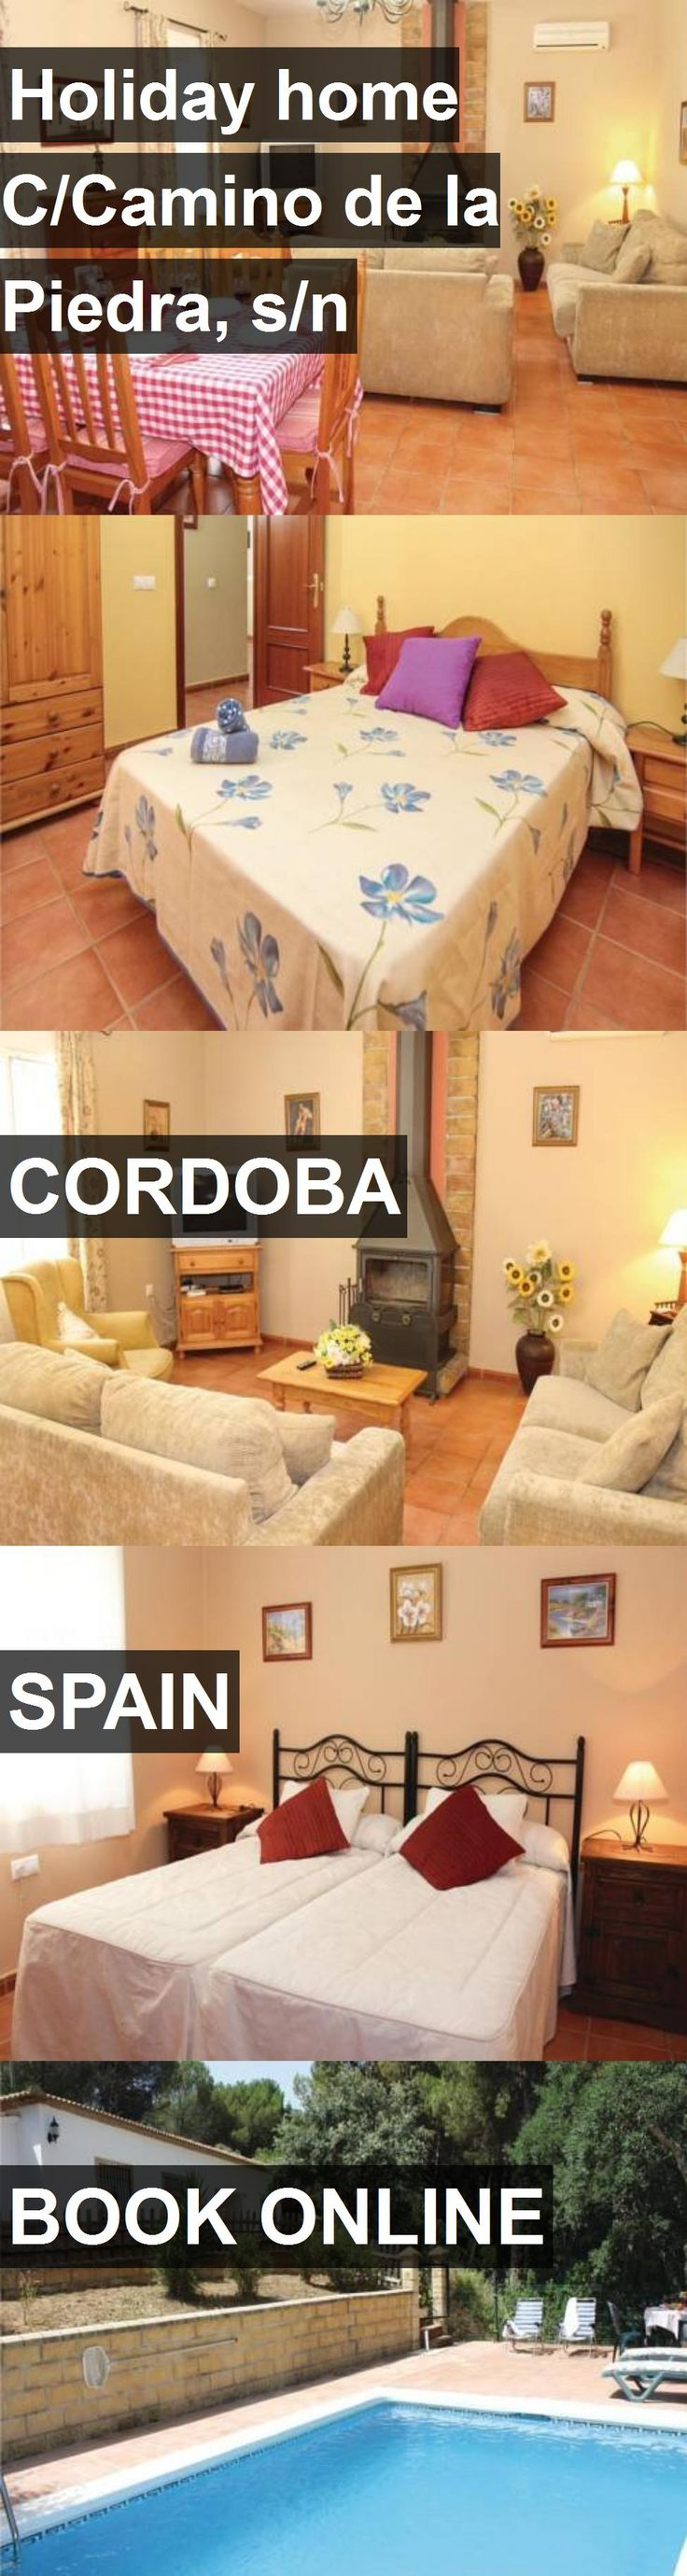 Hotel Holiday home C/Camino de la Piedra, s/n in Cordoba, Spain. For more information, photos, reviews and best prices please follow the link. #Spain #Cordoba #HolidayhomeC/CaminodelaPiedra,s/n #hotel #travel #vacation